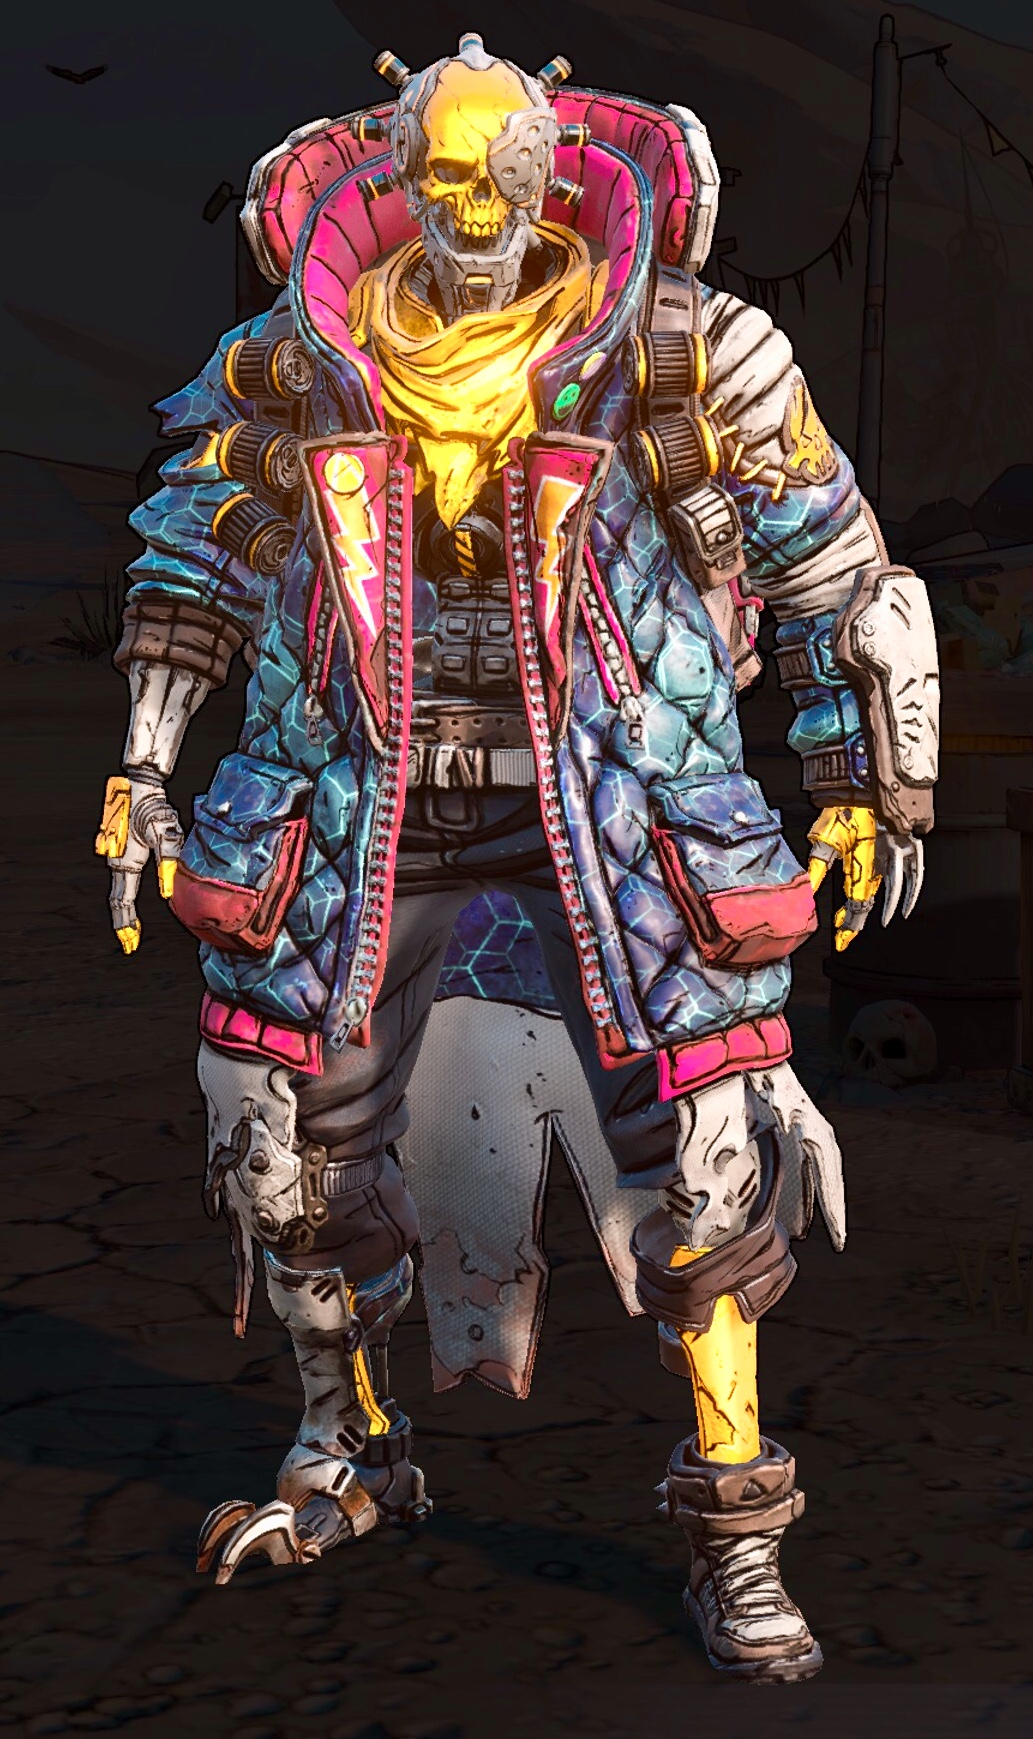 Who is your Borderlands 3 Main Character? Share some pictures if you have them. [IMG]